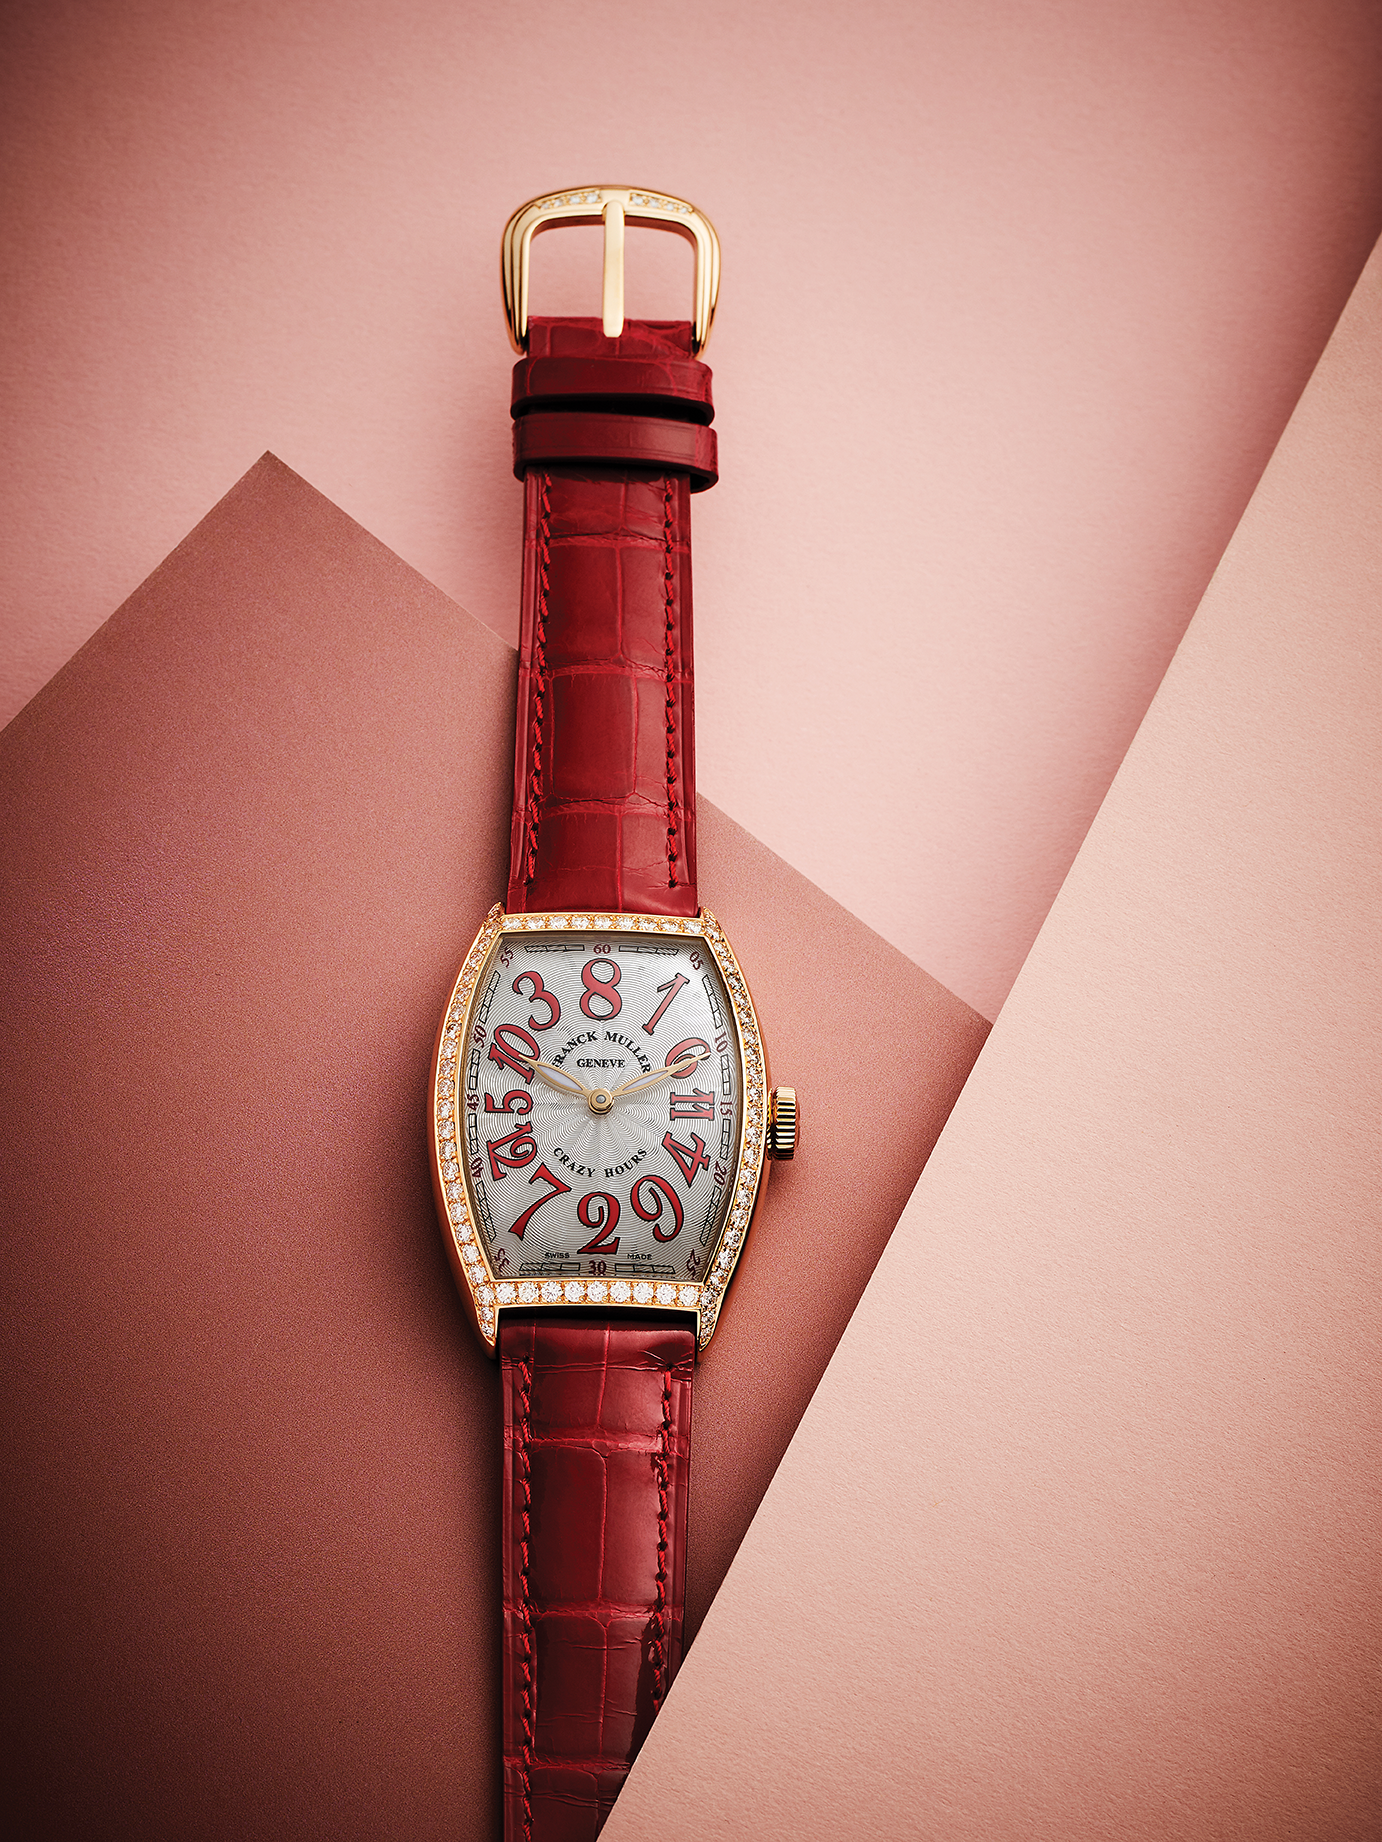 01. Crazy Hours 15th Anniversary_5850 rose gold diamond case.png